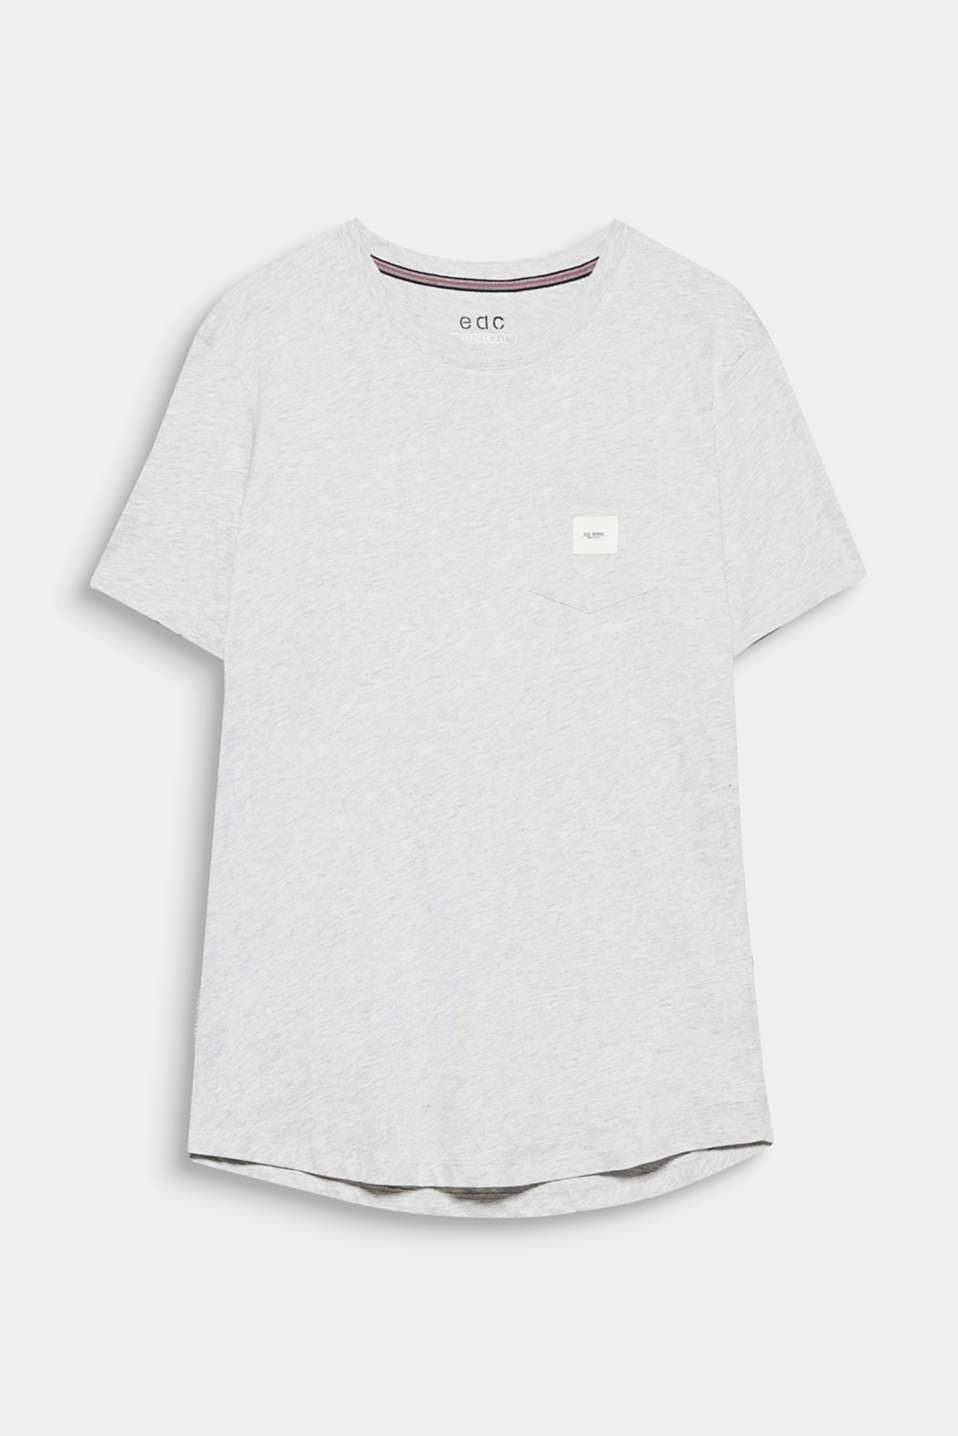 A sporty basic with a touch of street style: crewneck T-shirt made of blended cotton.